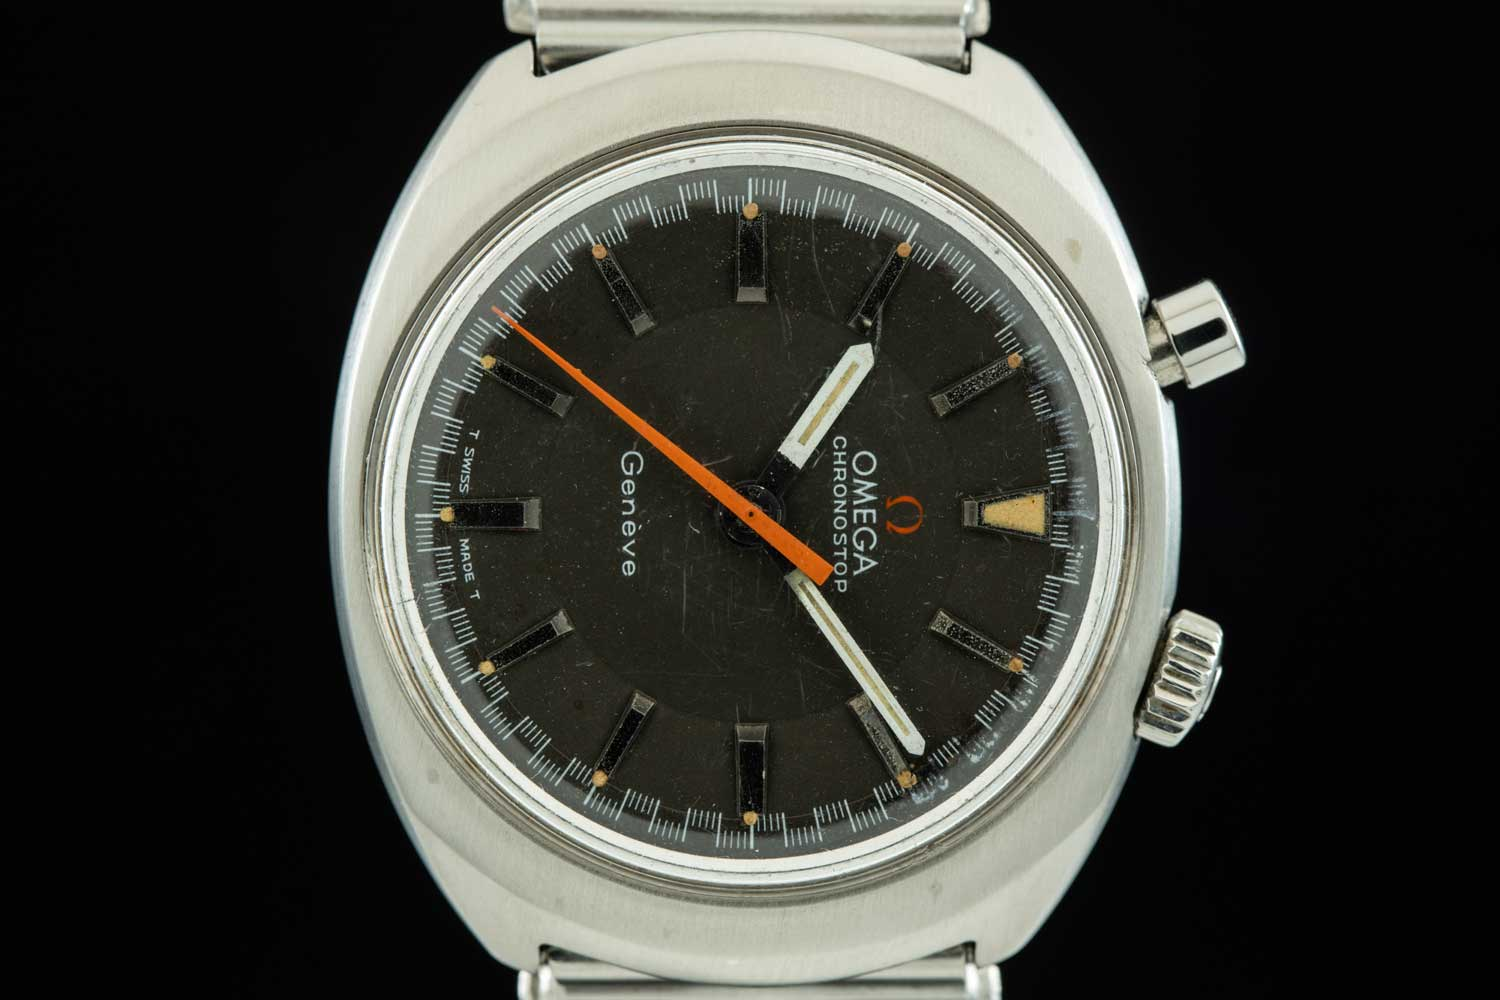 """This Omega Chronostop """"Driver"""" was designed to be worn under the wrist, for greater readability when behind the wheel of a car (Image: AnalogShift.com)"""